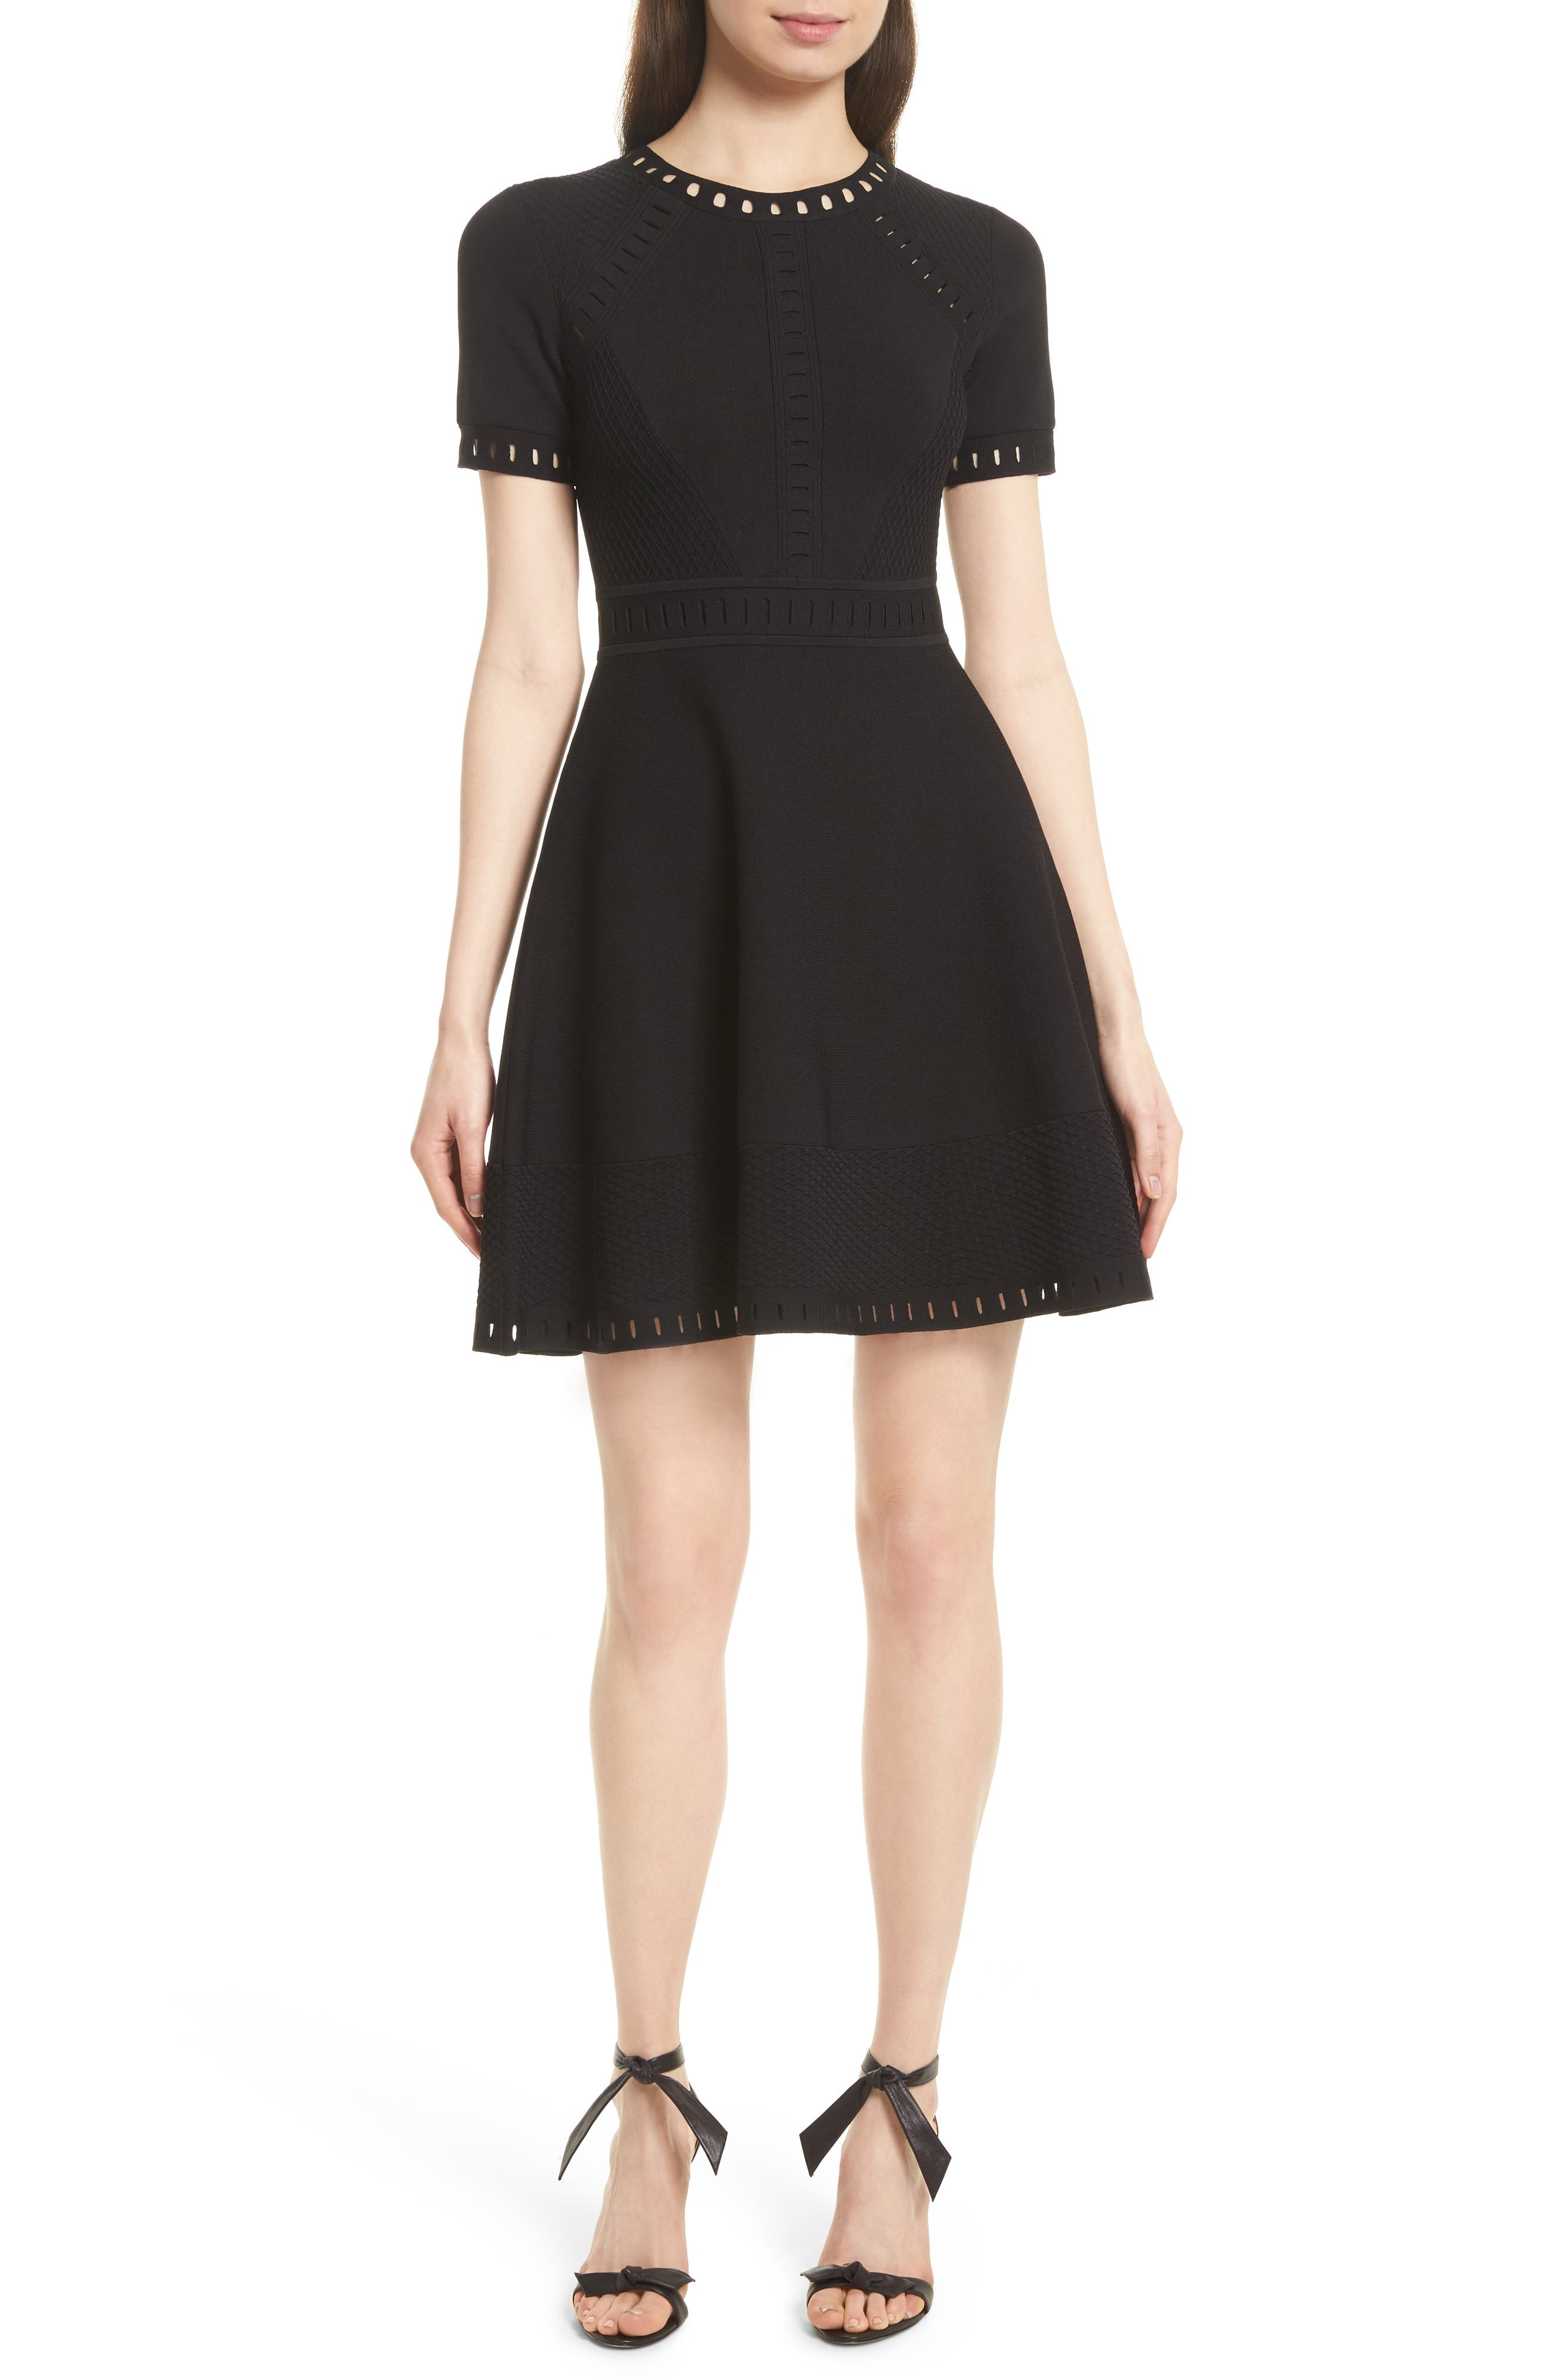 Alternate Image 1 Selected - Milly Texture Knit Fit & Flare Dress